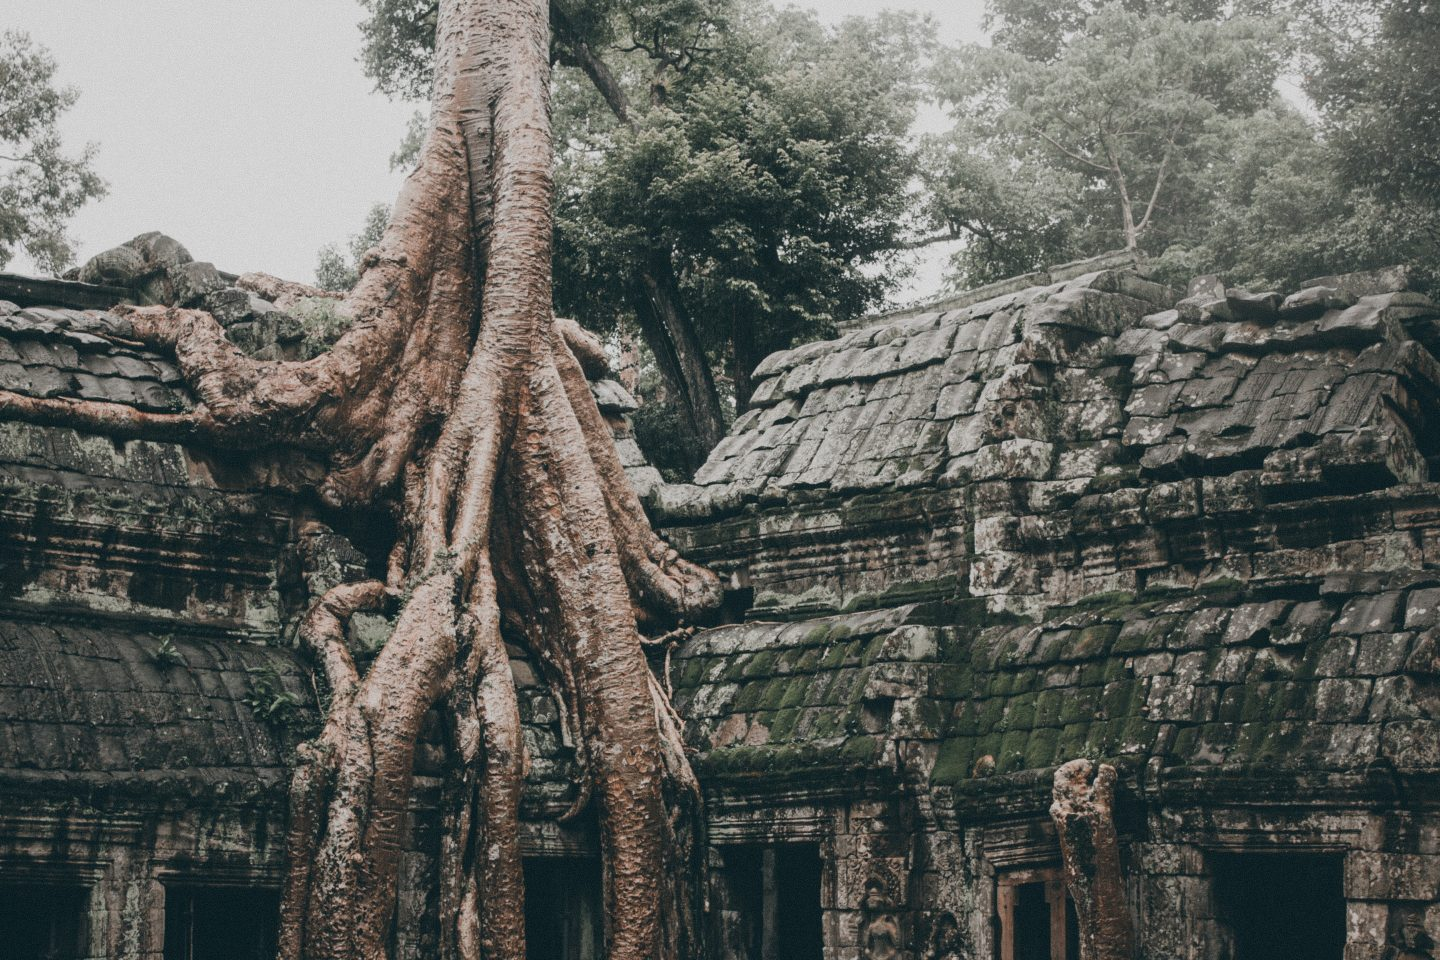 The Temples of Angkor Wat, Cambodia